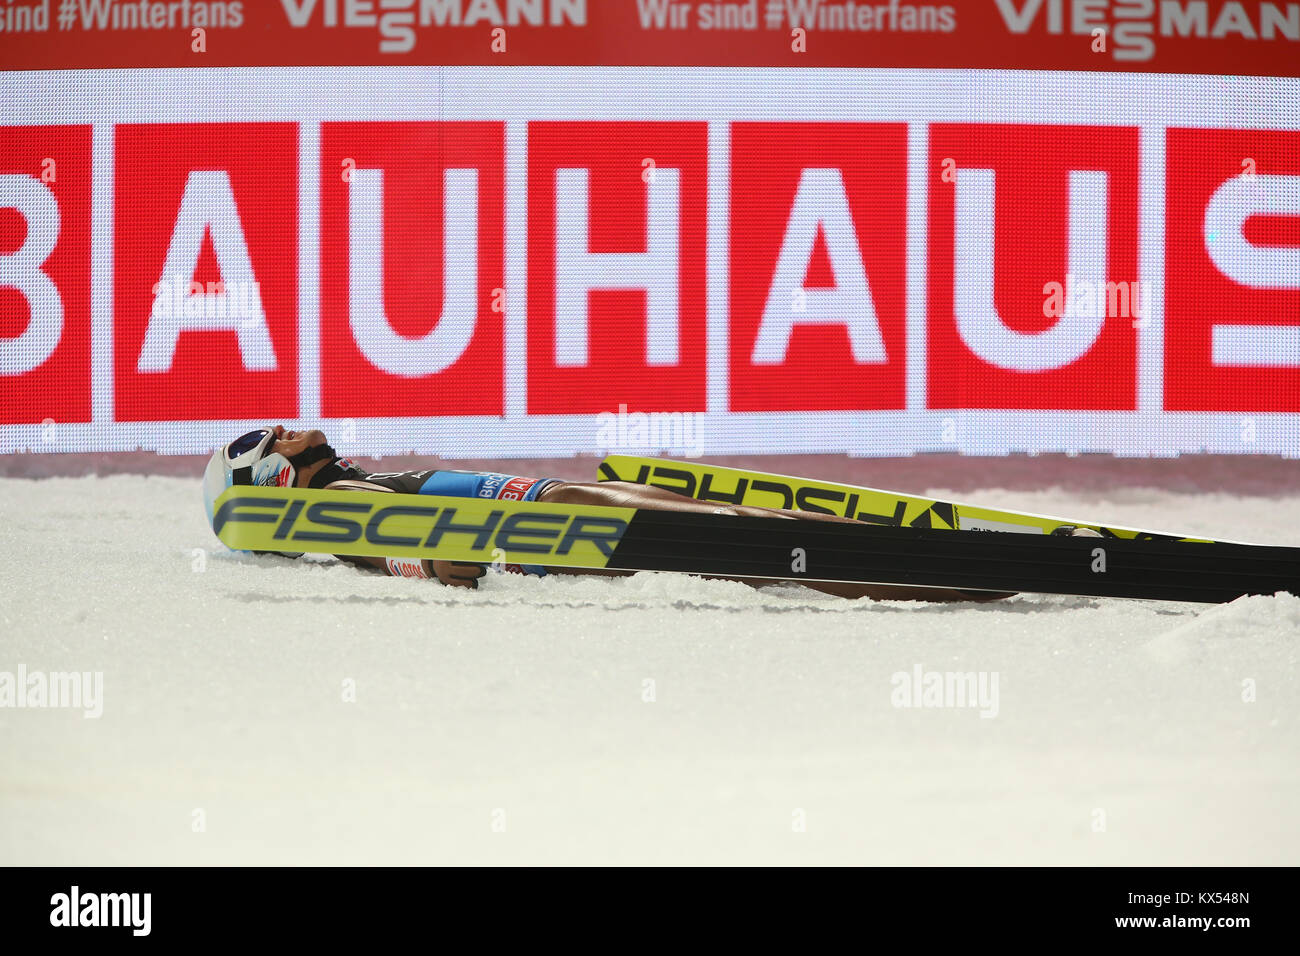 Bischofshofen, Austria. 06th, Jan 2018. Poland's Kamil Stoch reacts after winning the FIS Nordic World Cup 66th - Stock Image